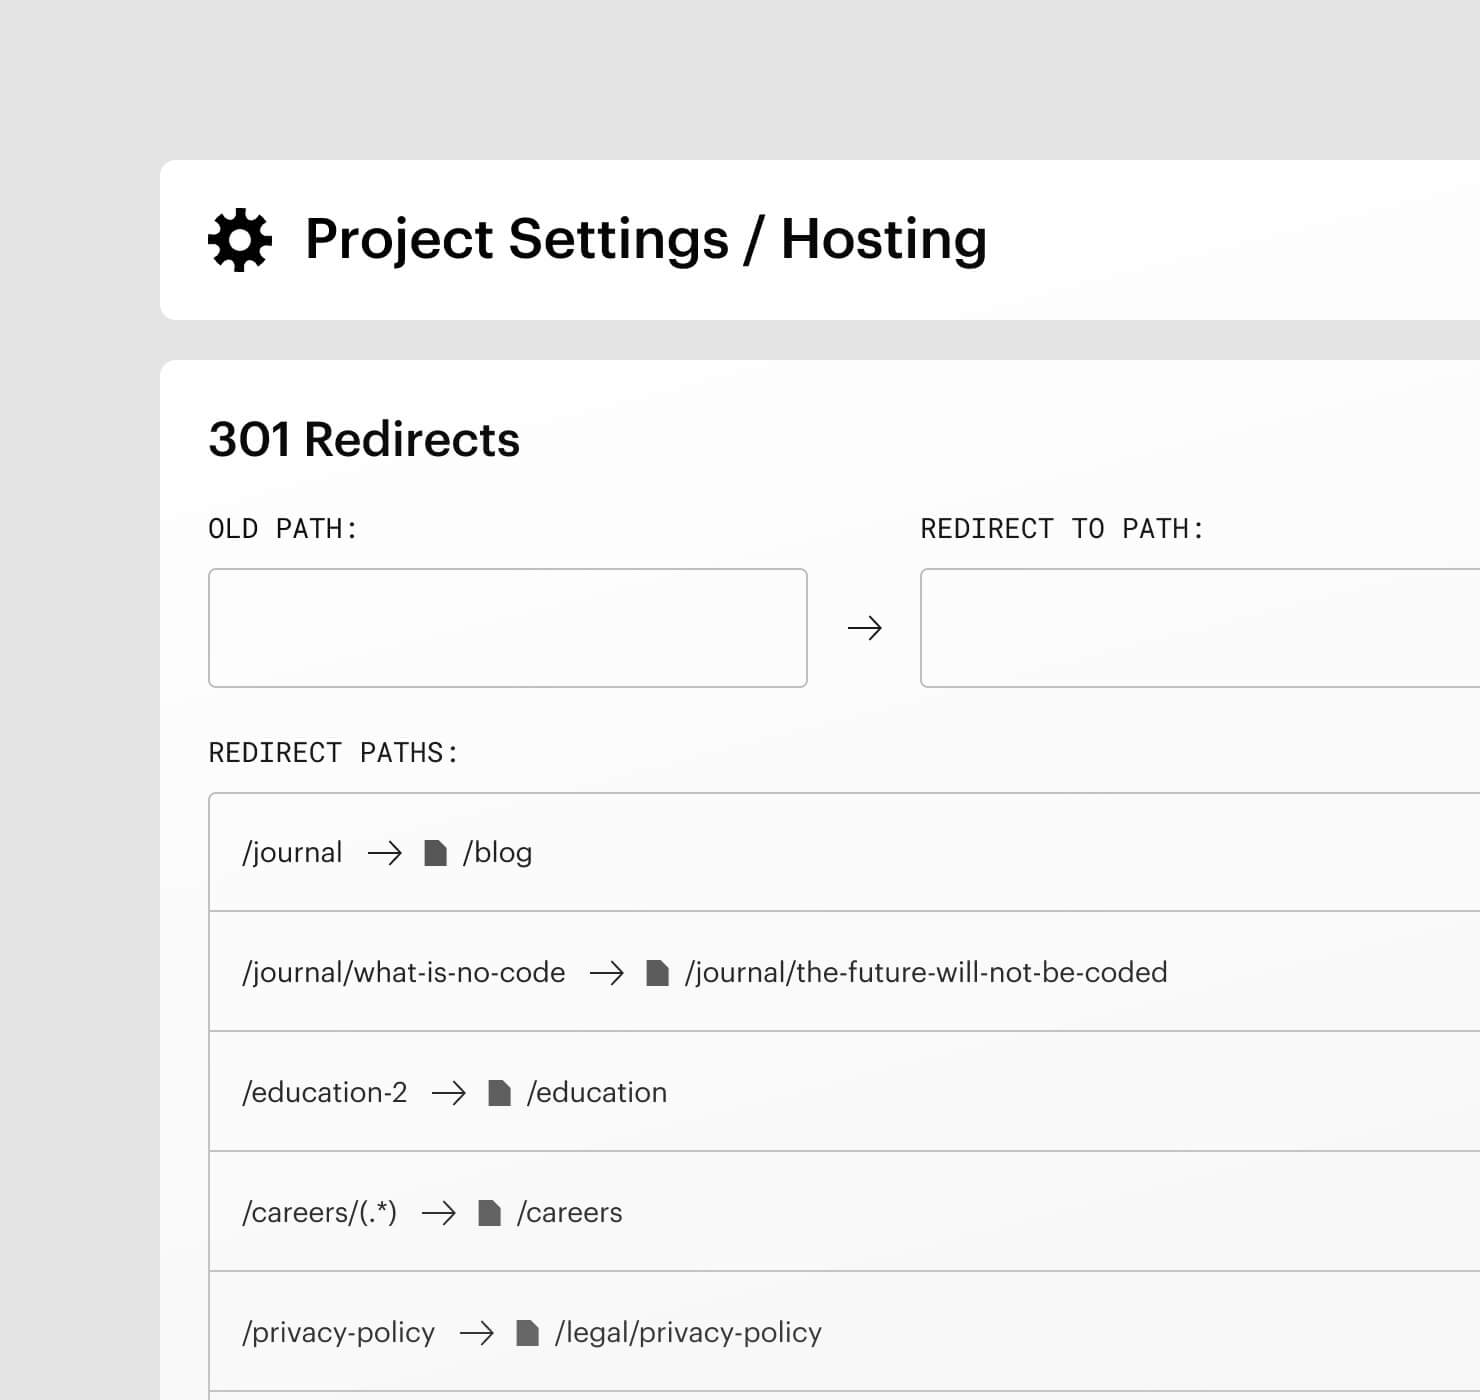 Project settings UI for 301 redirects